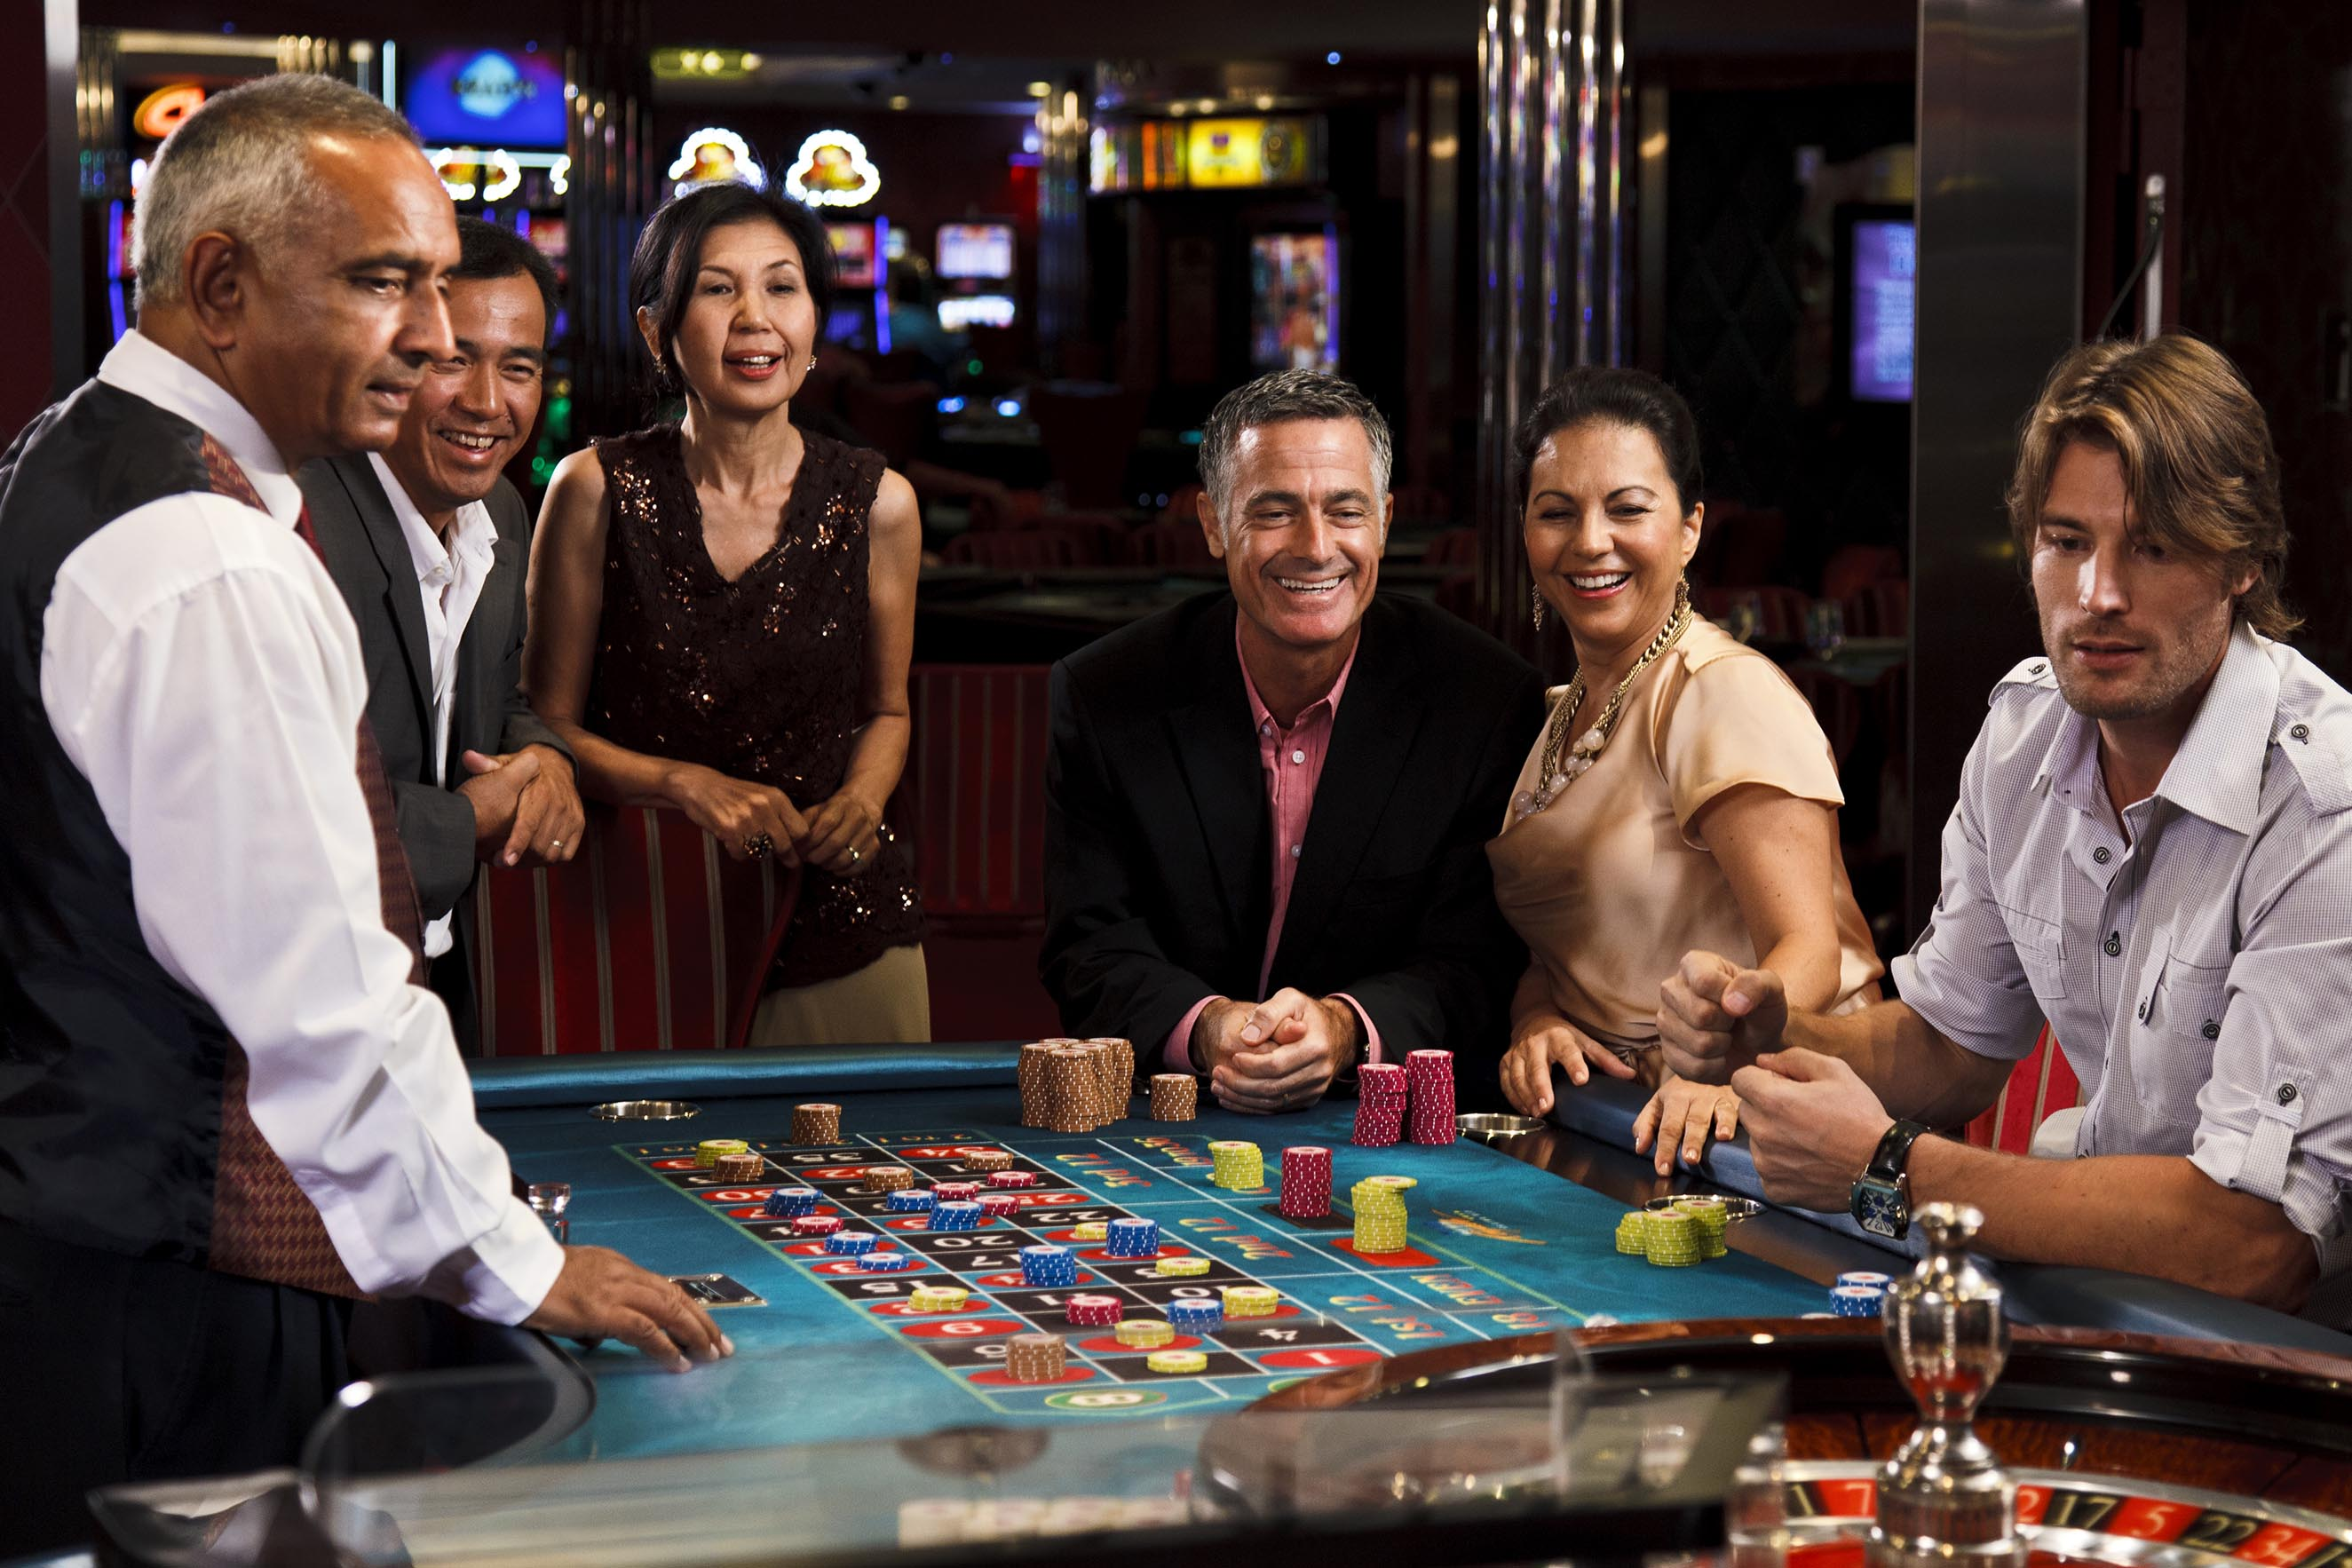 Royal Caribbean Cruises - Casino